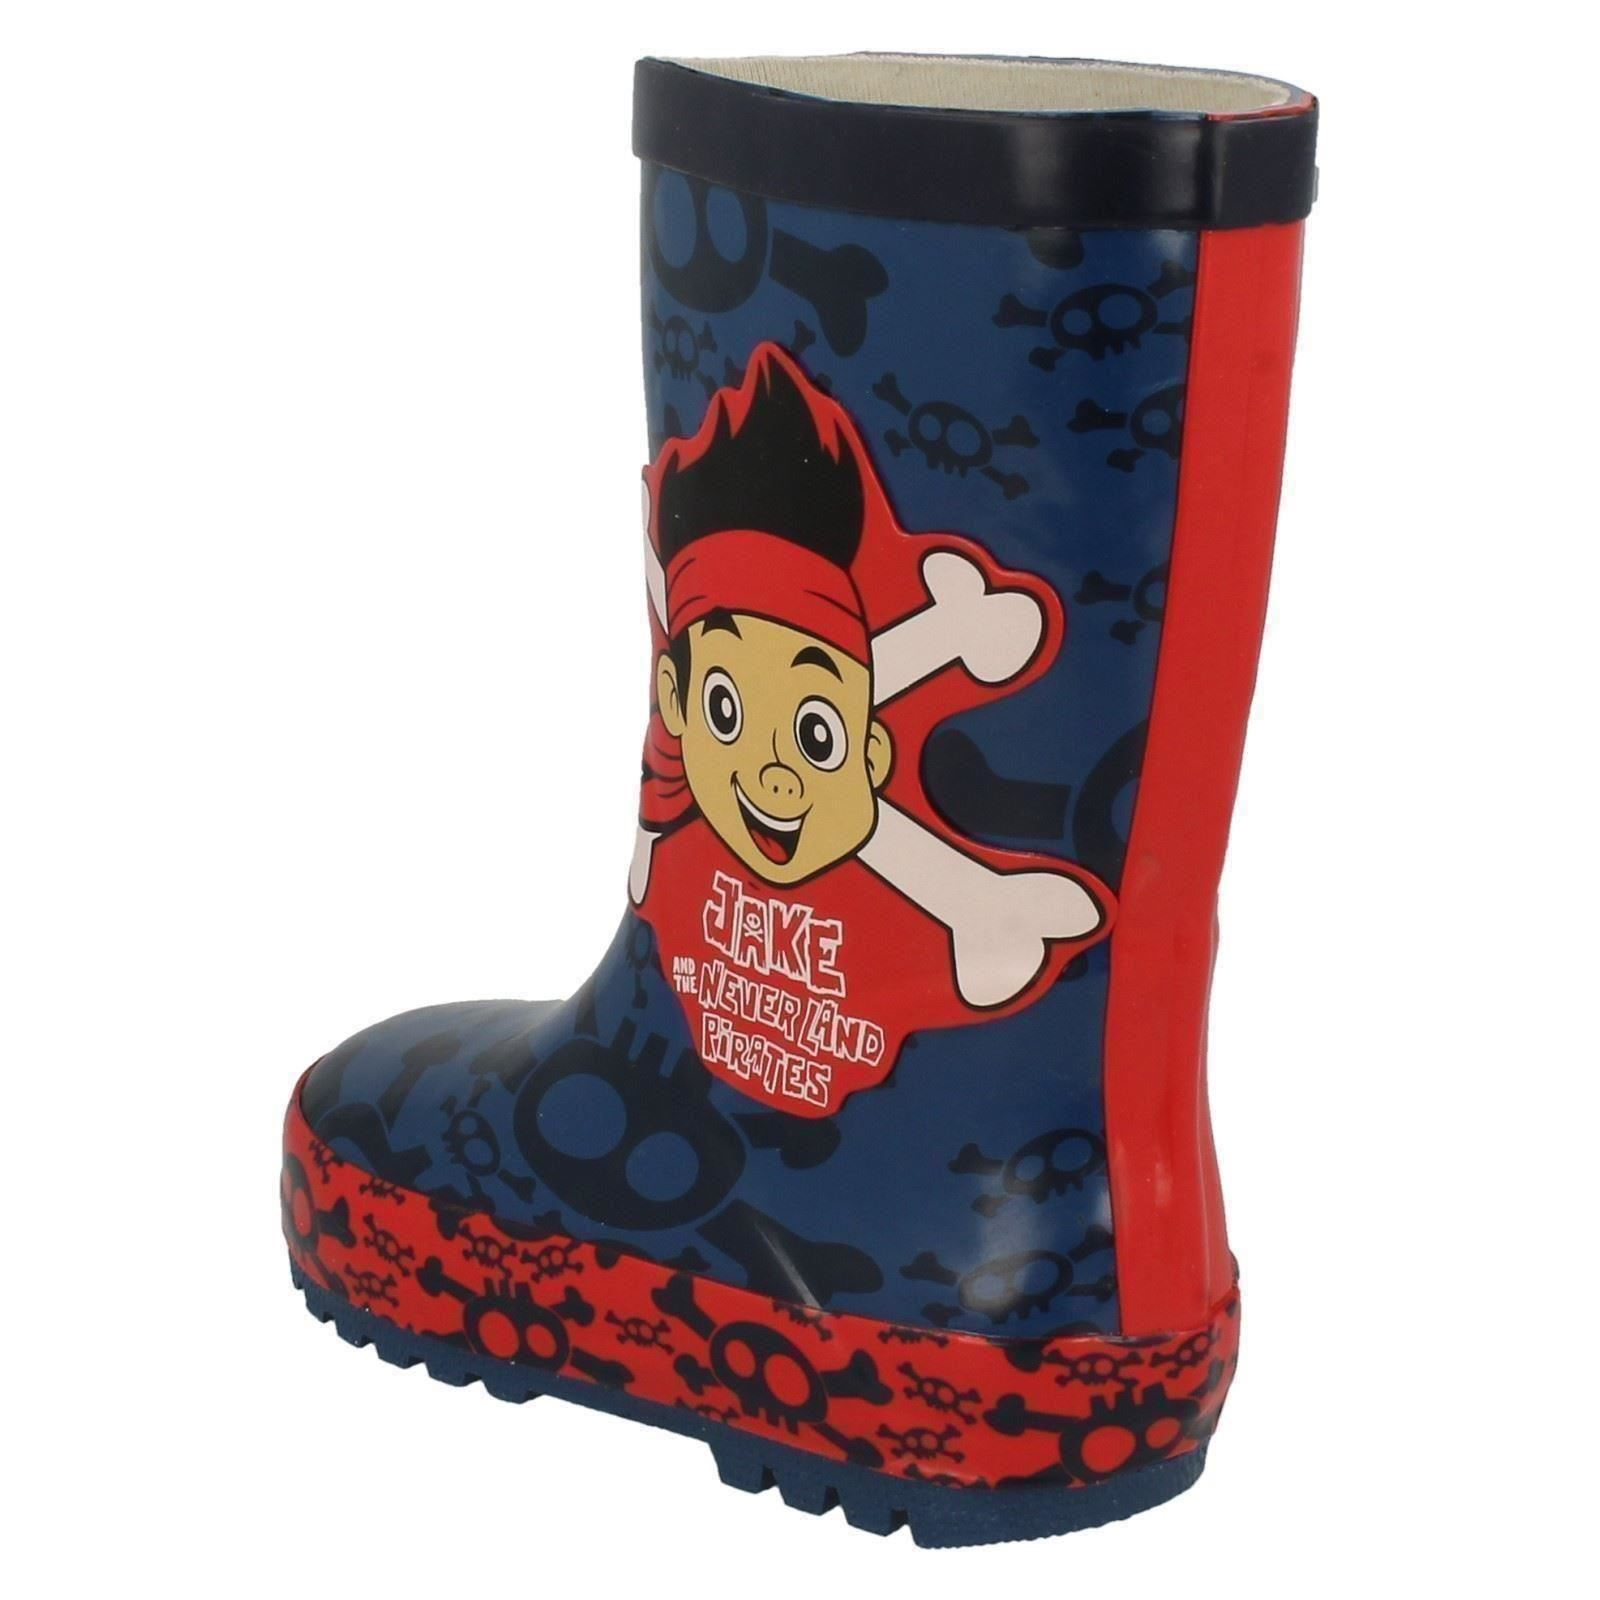 Chicos Disneys Pirata Wellingtons Estilo-Jake Y Los Neverland